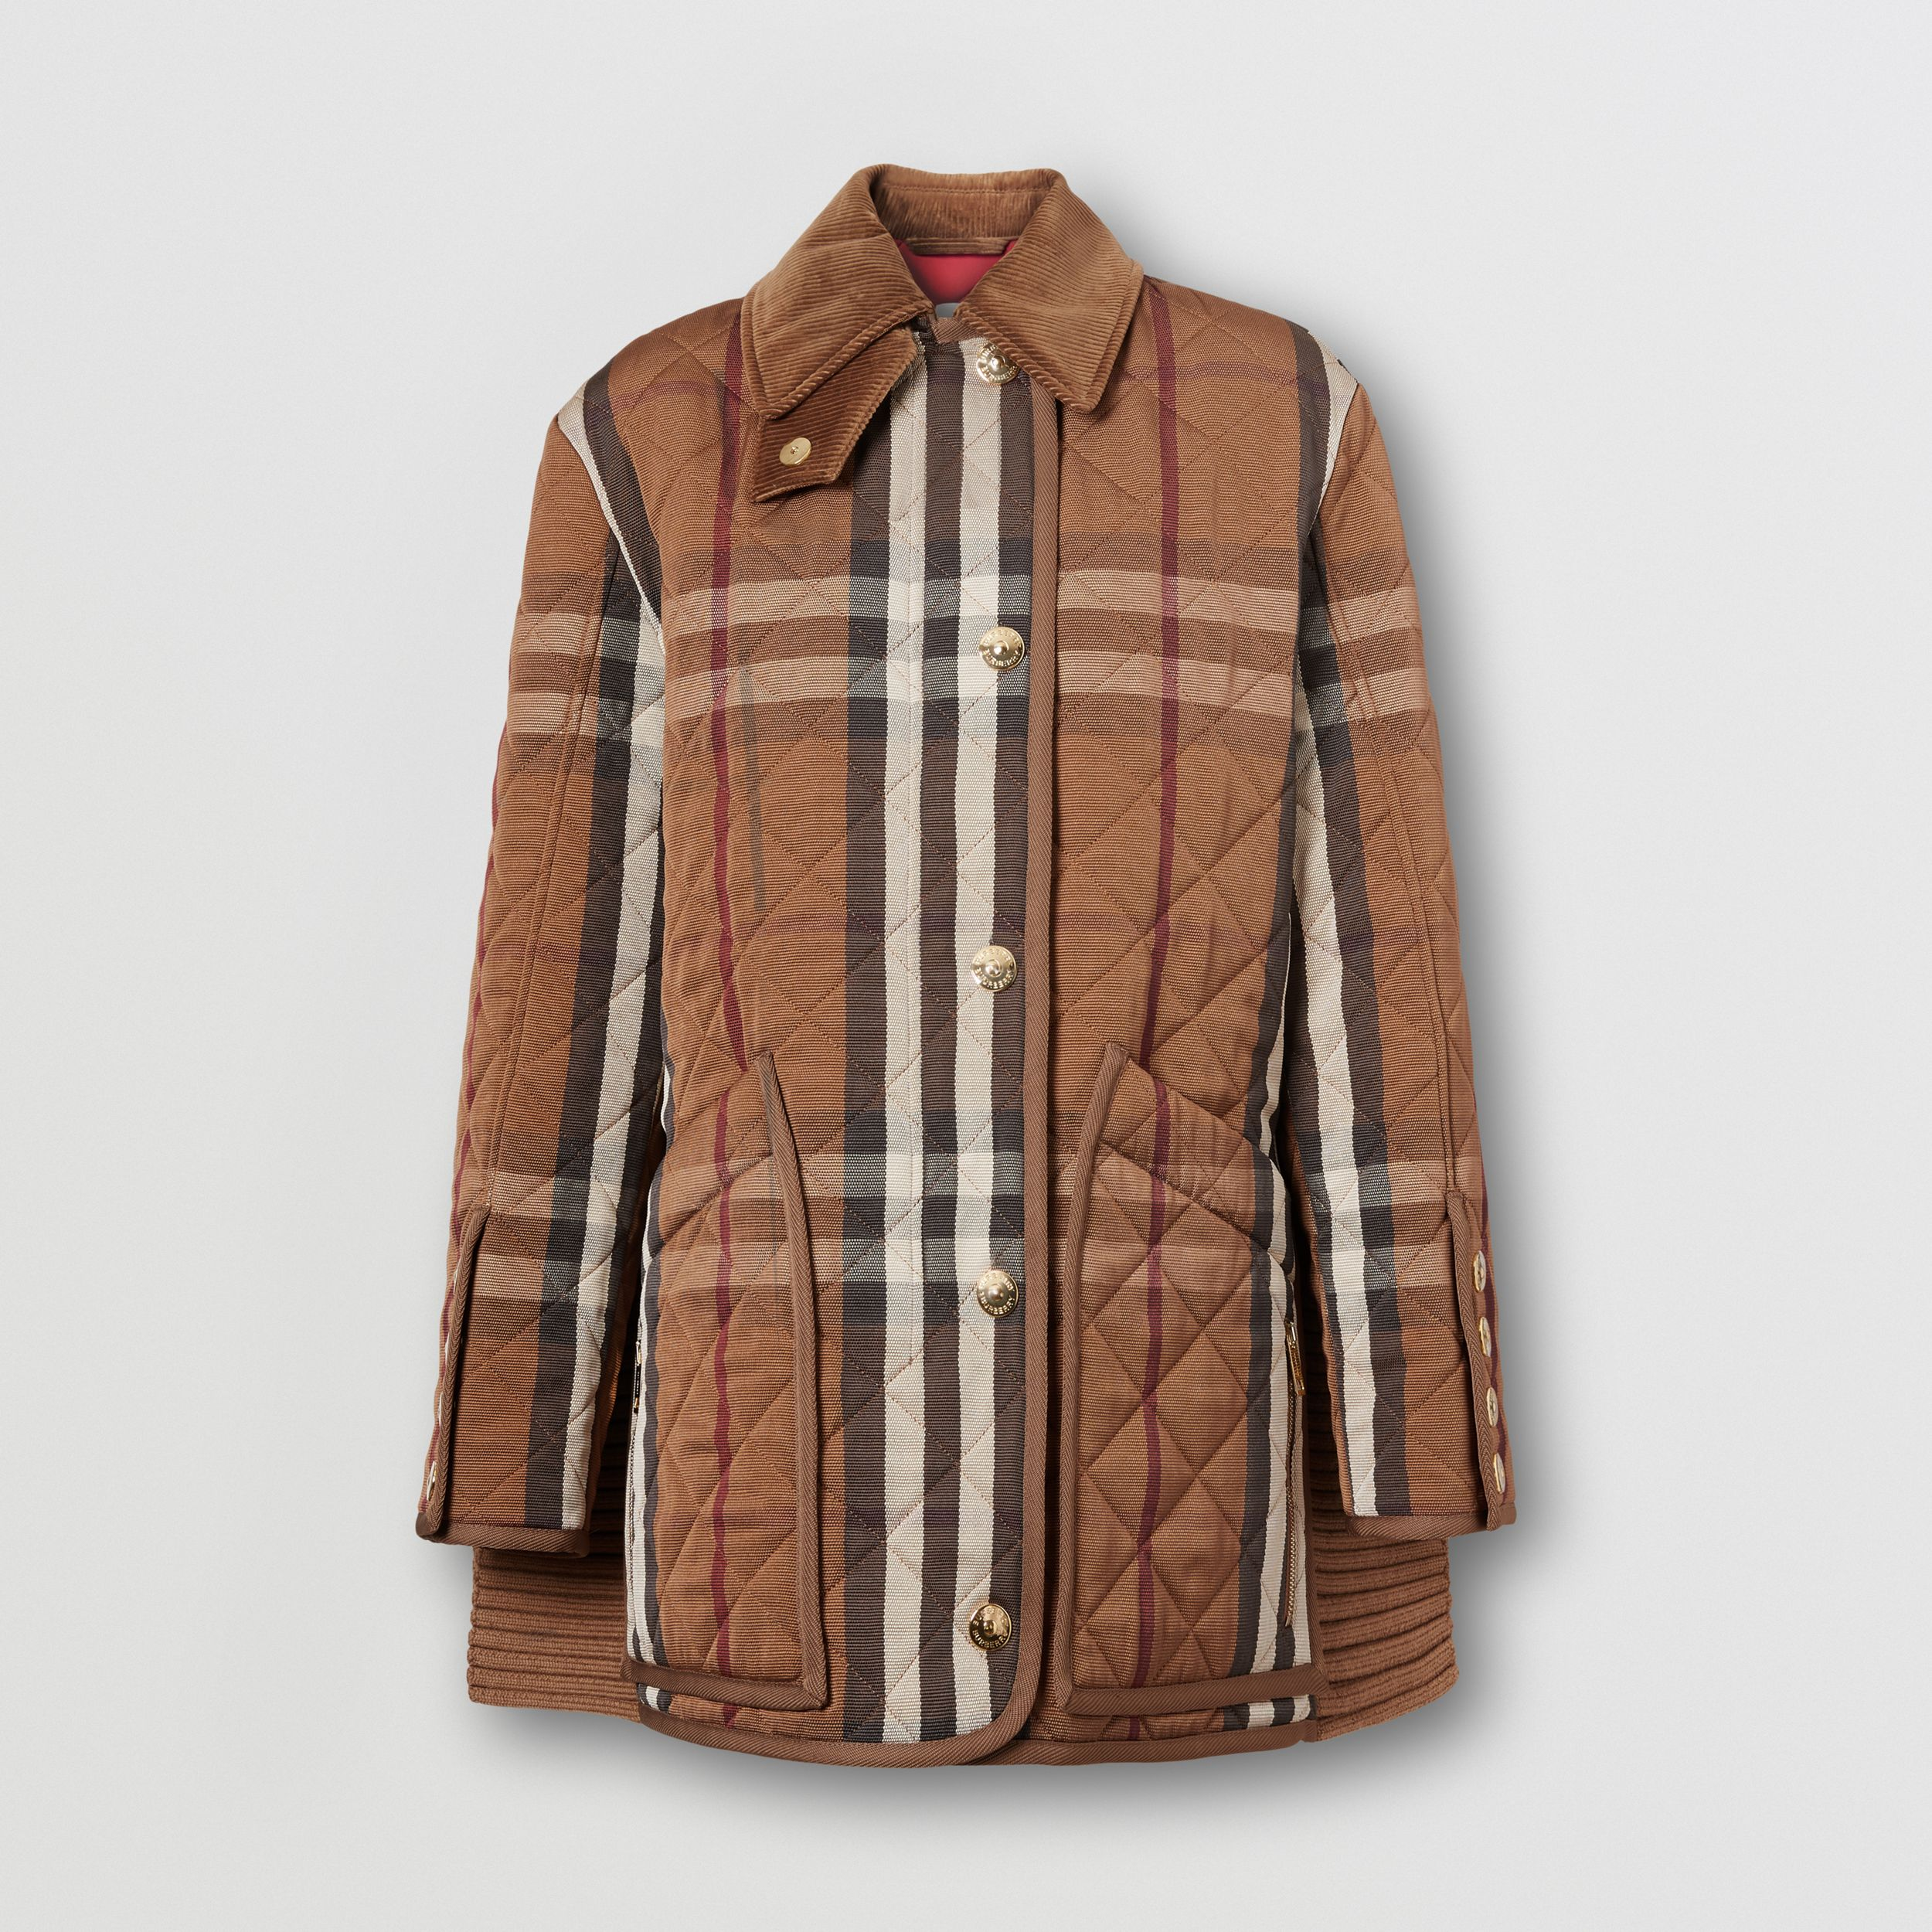 Rib Knit Panel Check Technical Cotton Barn Jacket in Birch Brown - Women | Burberry - 4